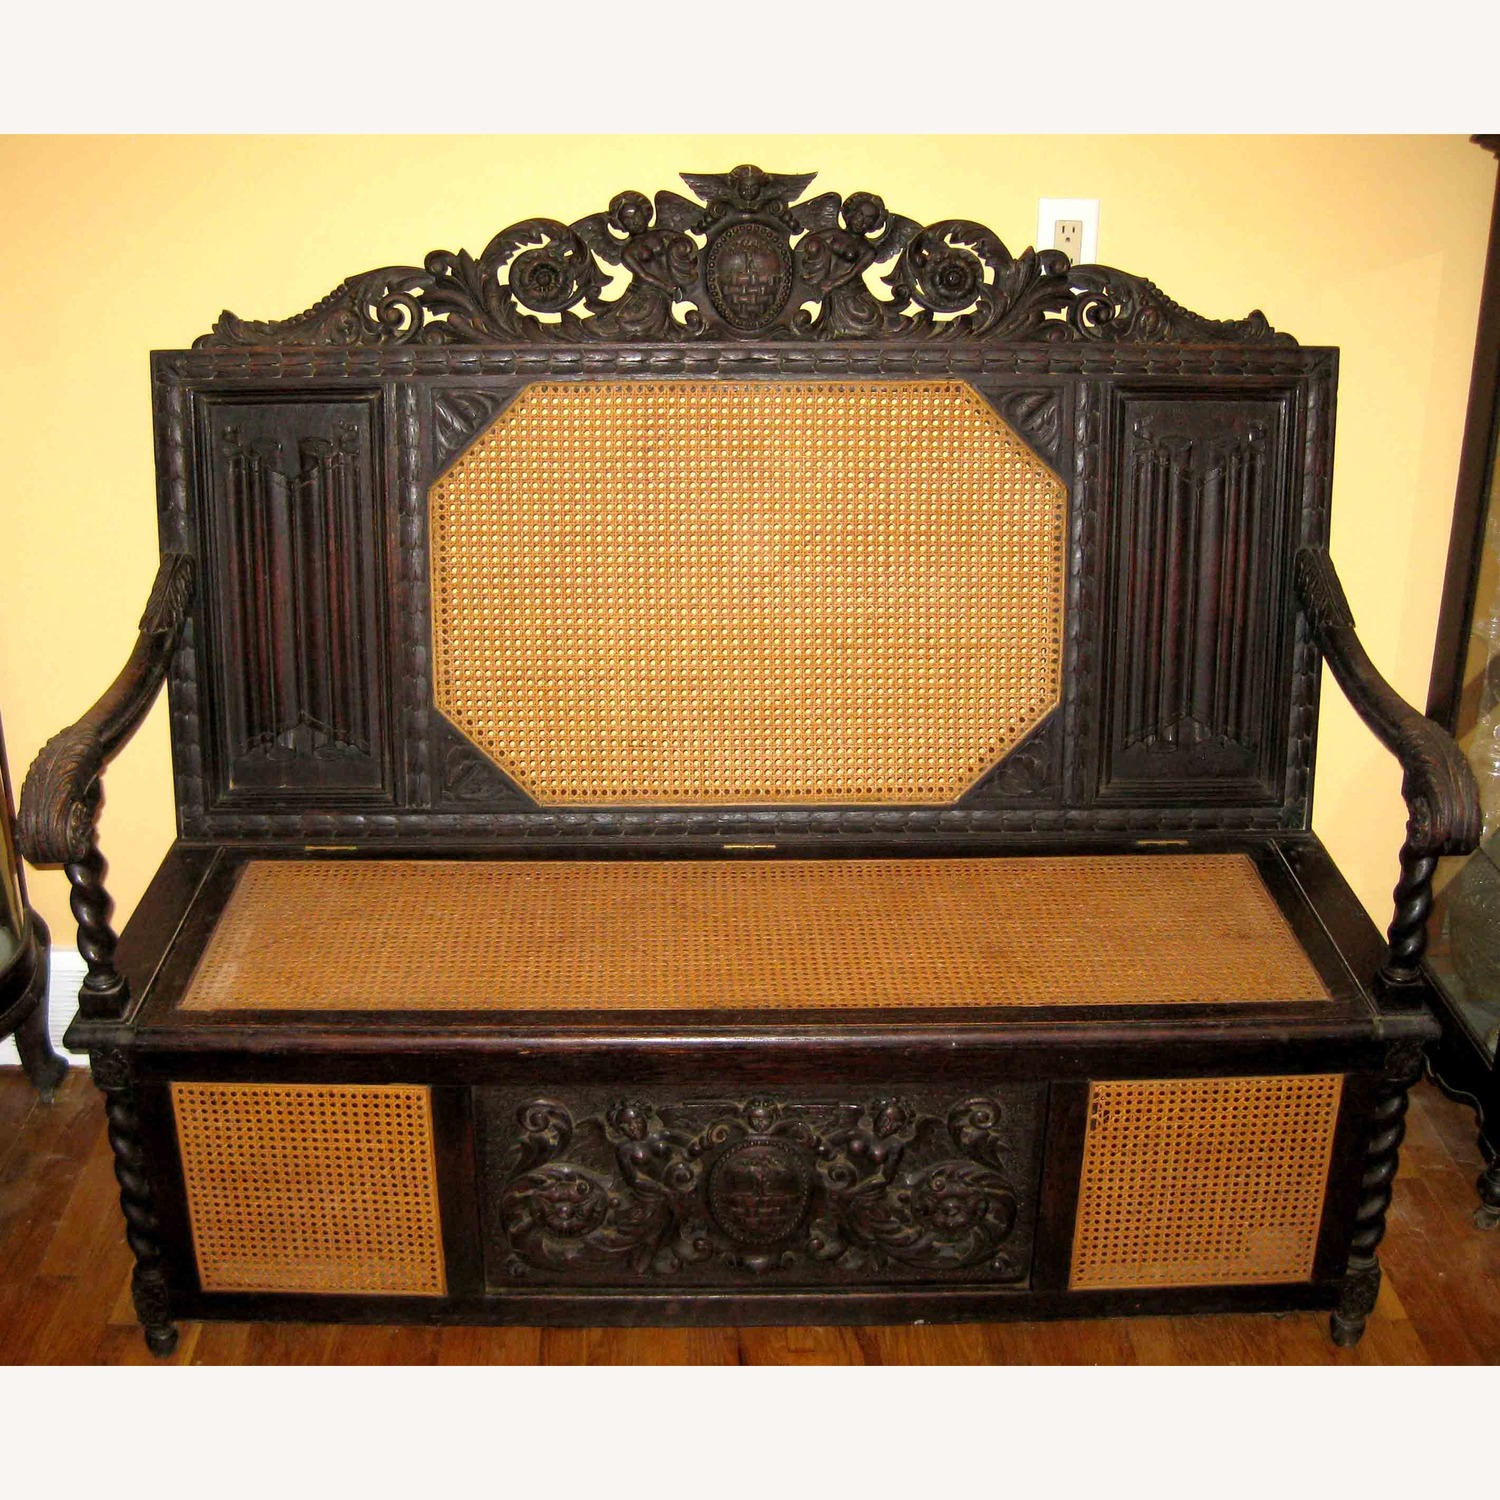 Ornately Carved Antique Italian Bench Chest - image-1